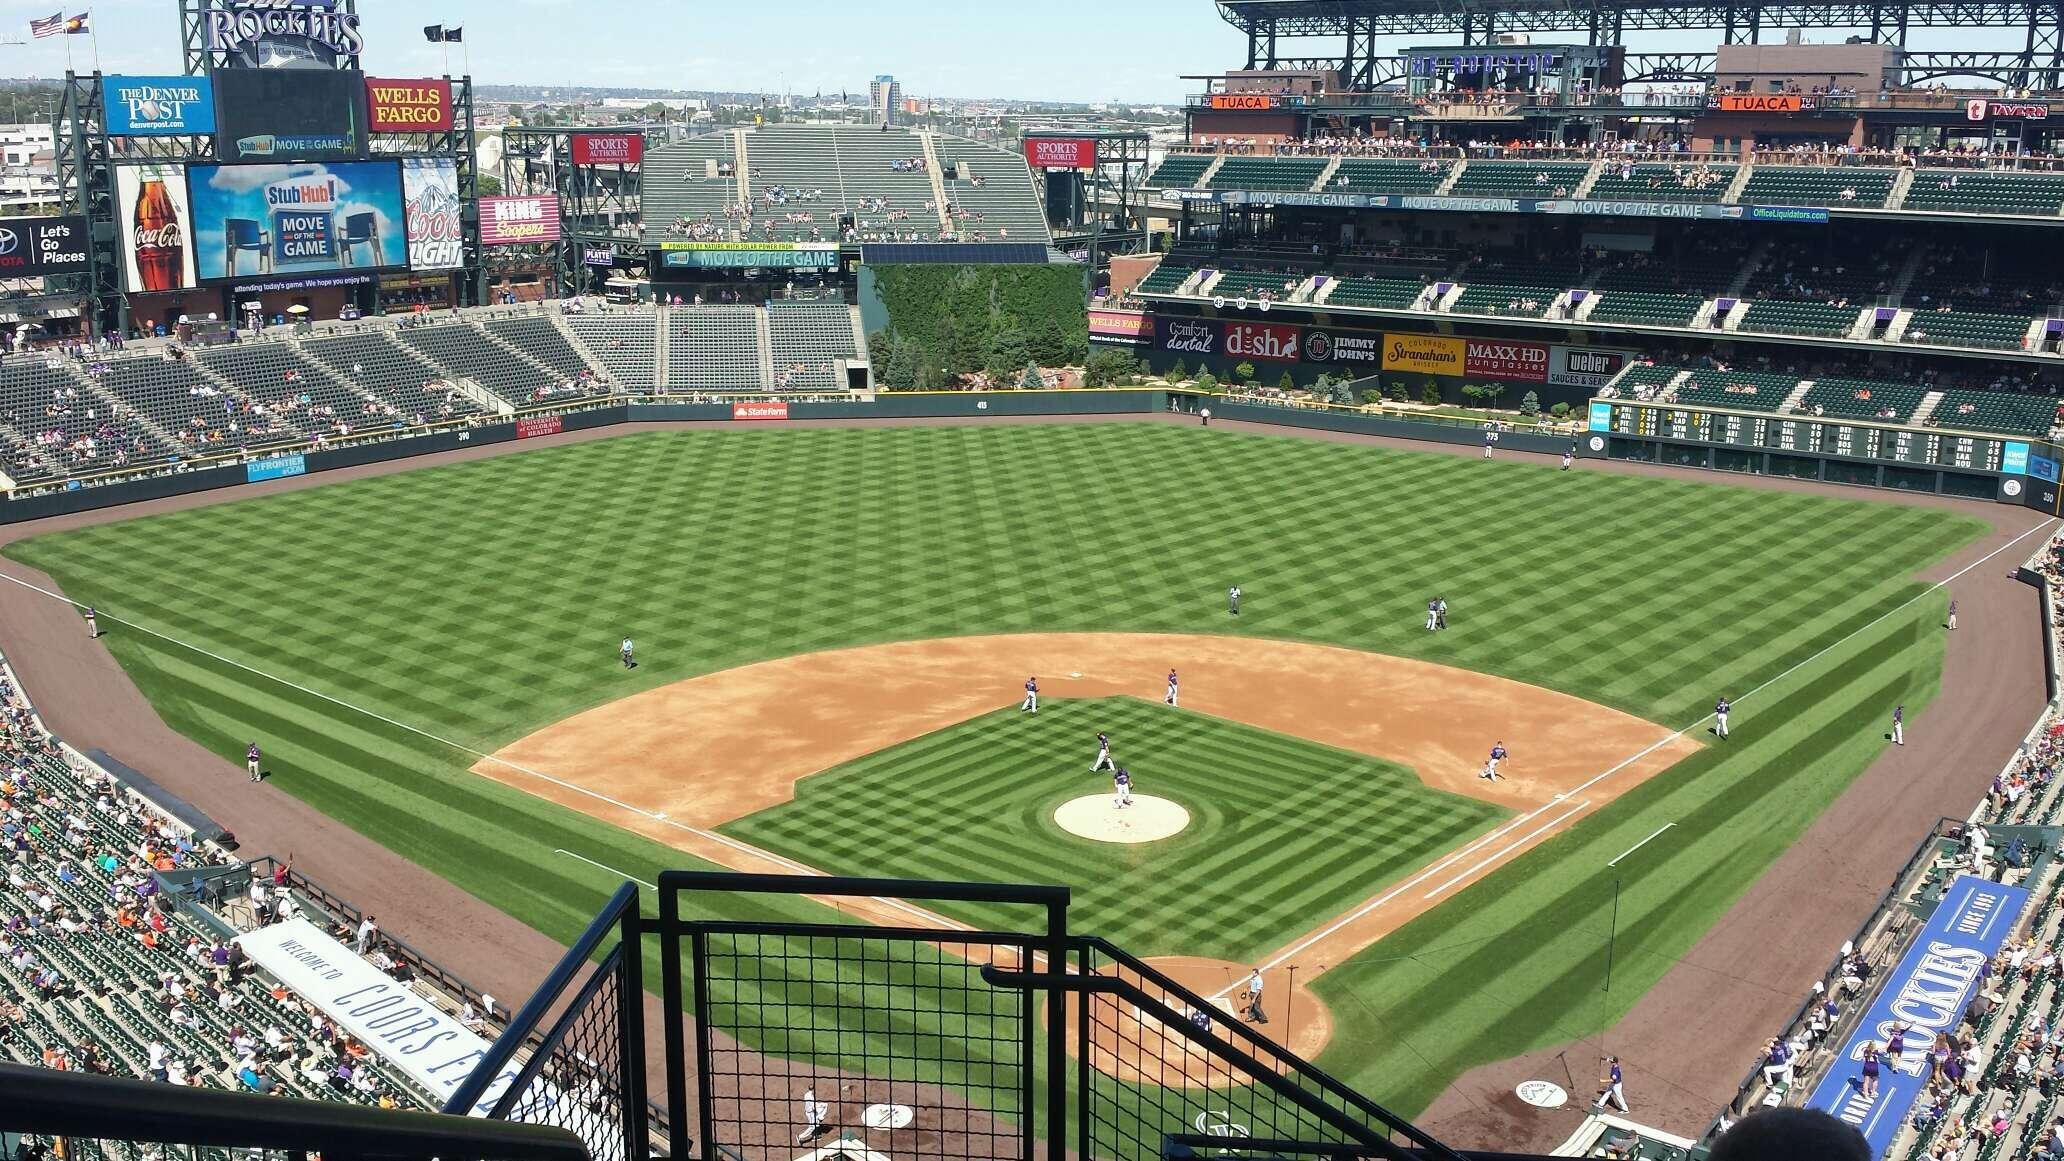 Coors Field Seating Chart With Rows And Seat Numbers ...